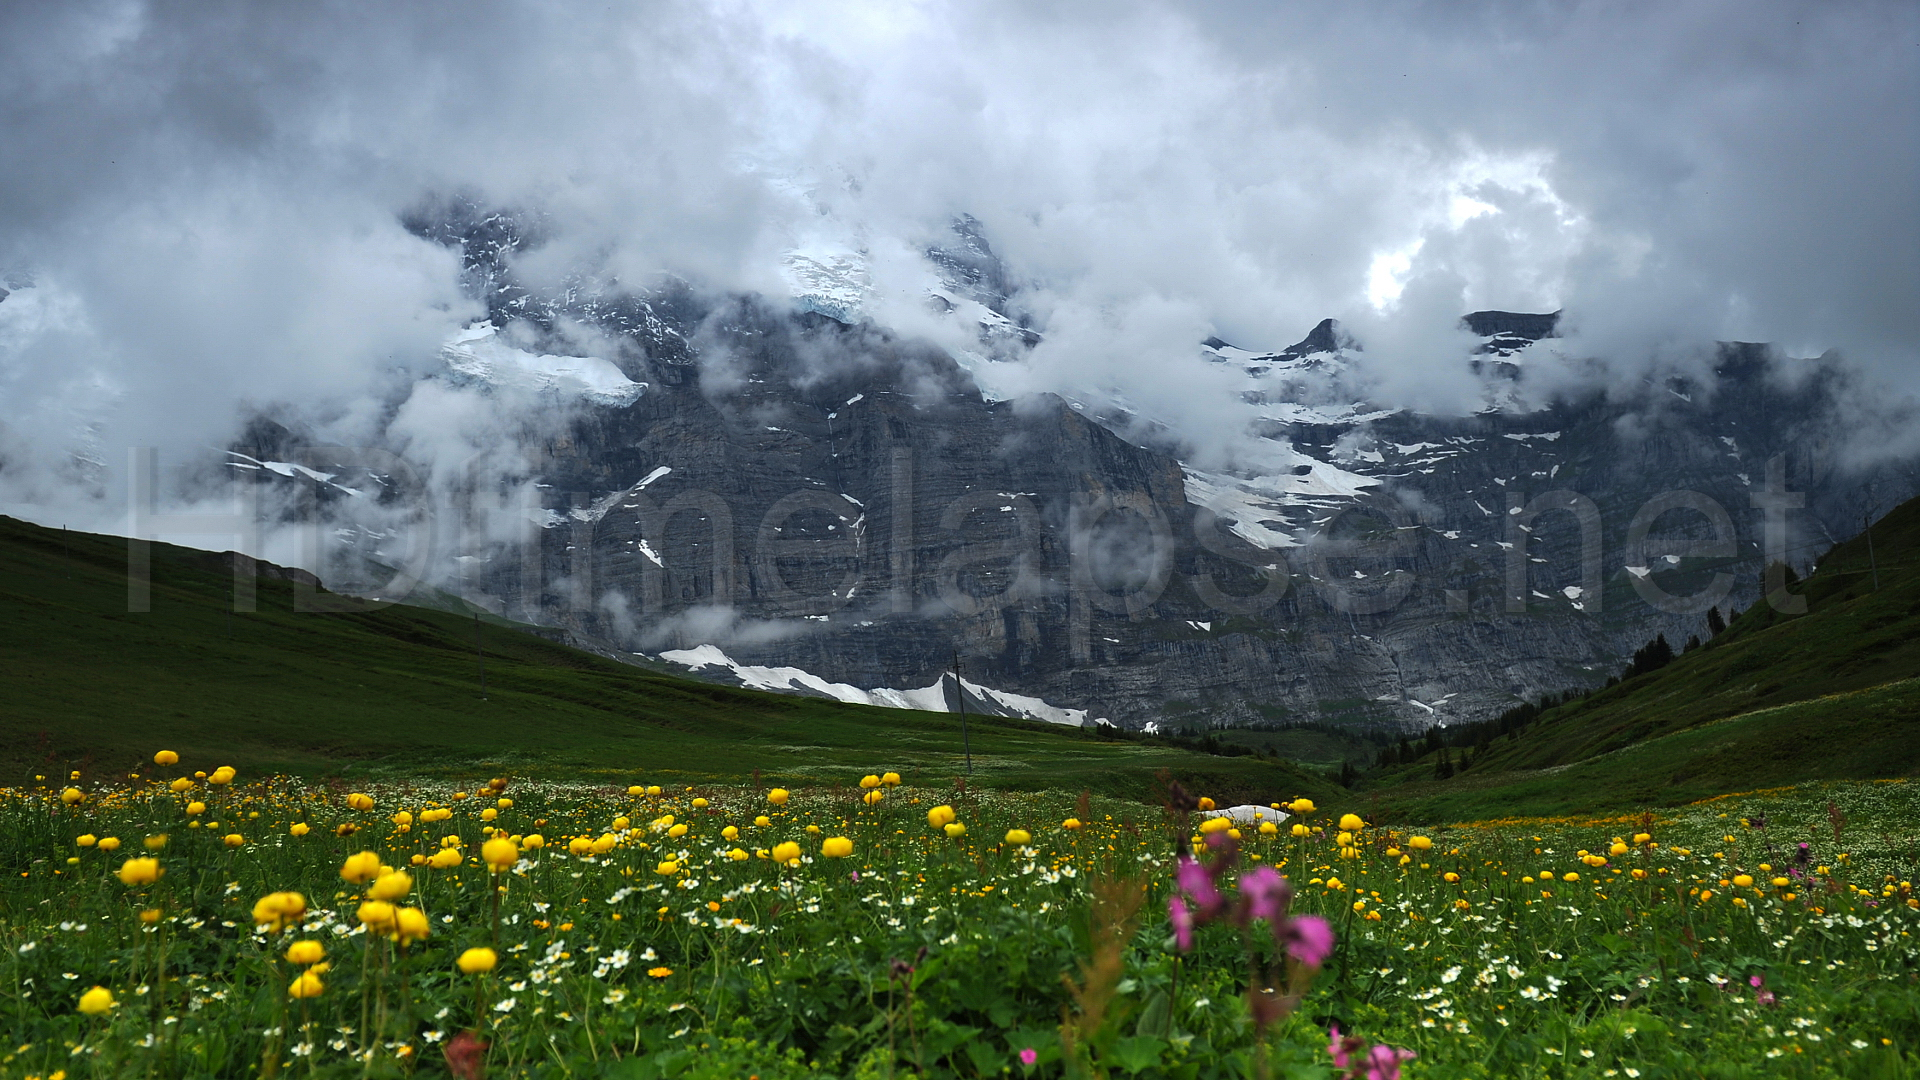 Swiss alps hd wallpaper wallpapersafari - Swiss alps wallpaper ...